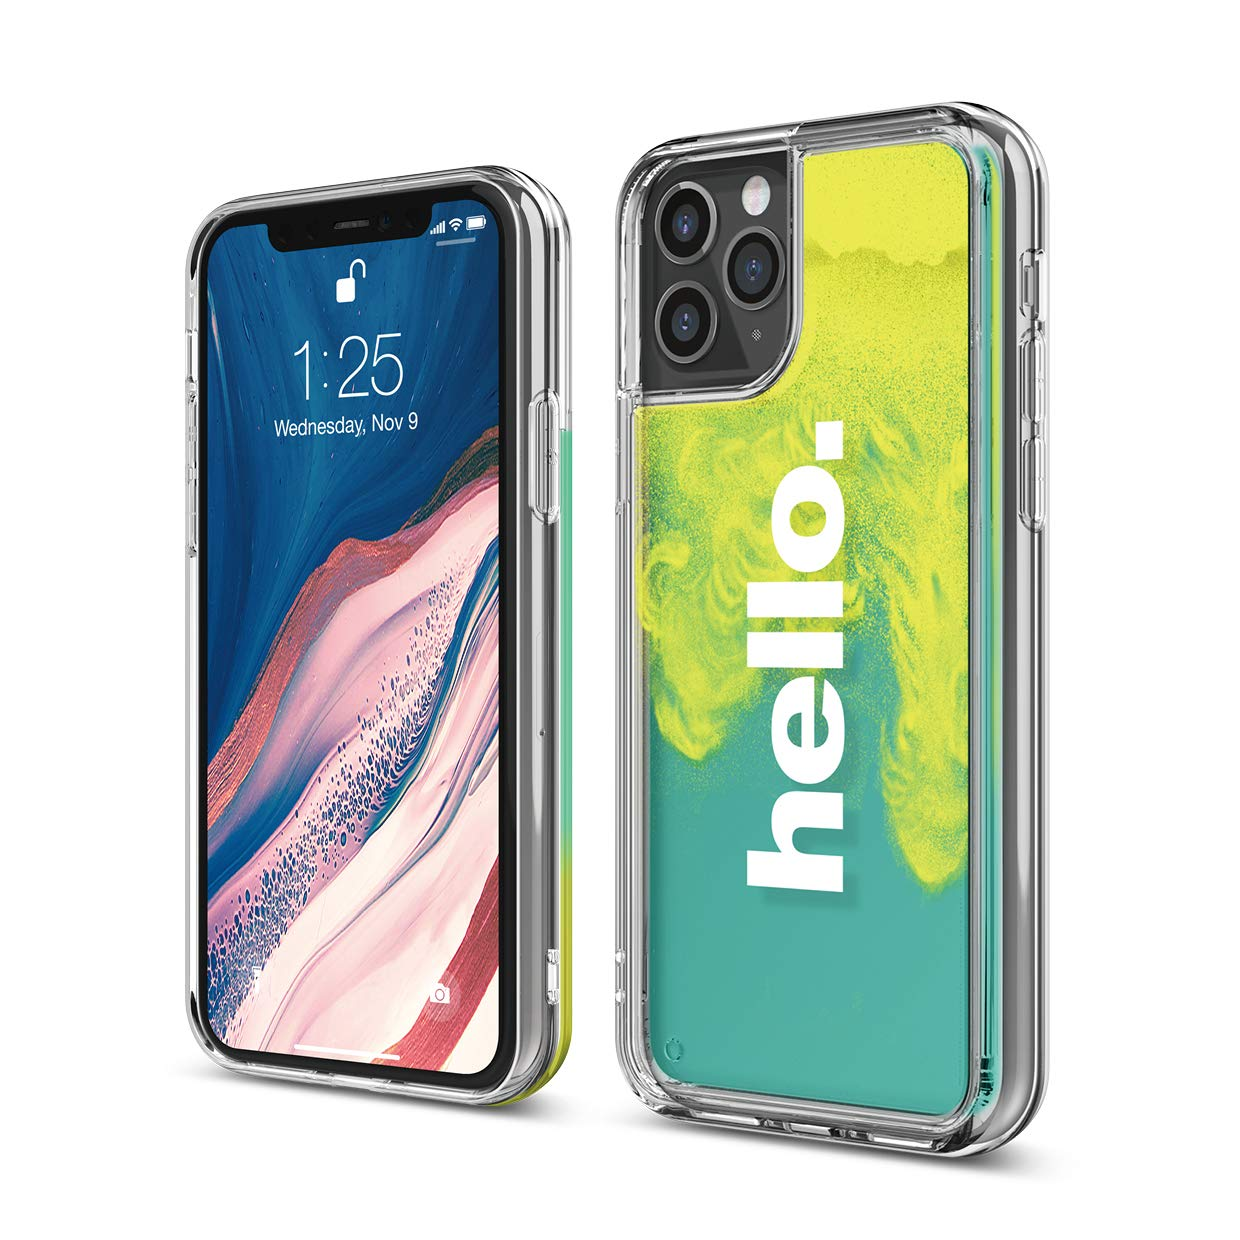 elago iPhone 11 Pro Case - Waterfall Effect, Liquid Neon Sand, Camera/Drop Protection, Fully Covered, Fit Tested, [Hello : Neon Yellow (Nightglow Green) + Coral Blue]